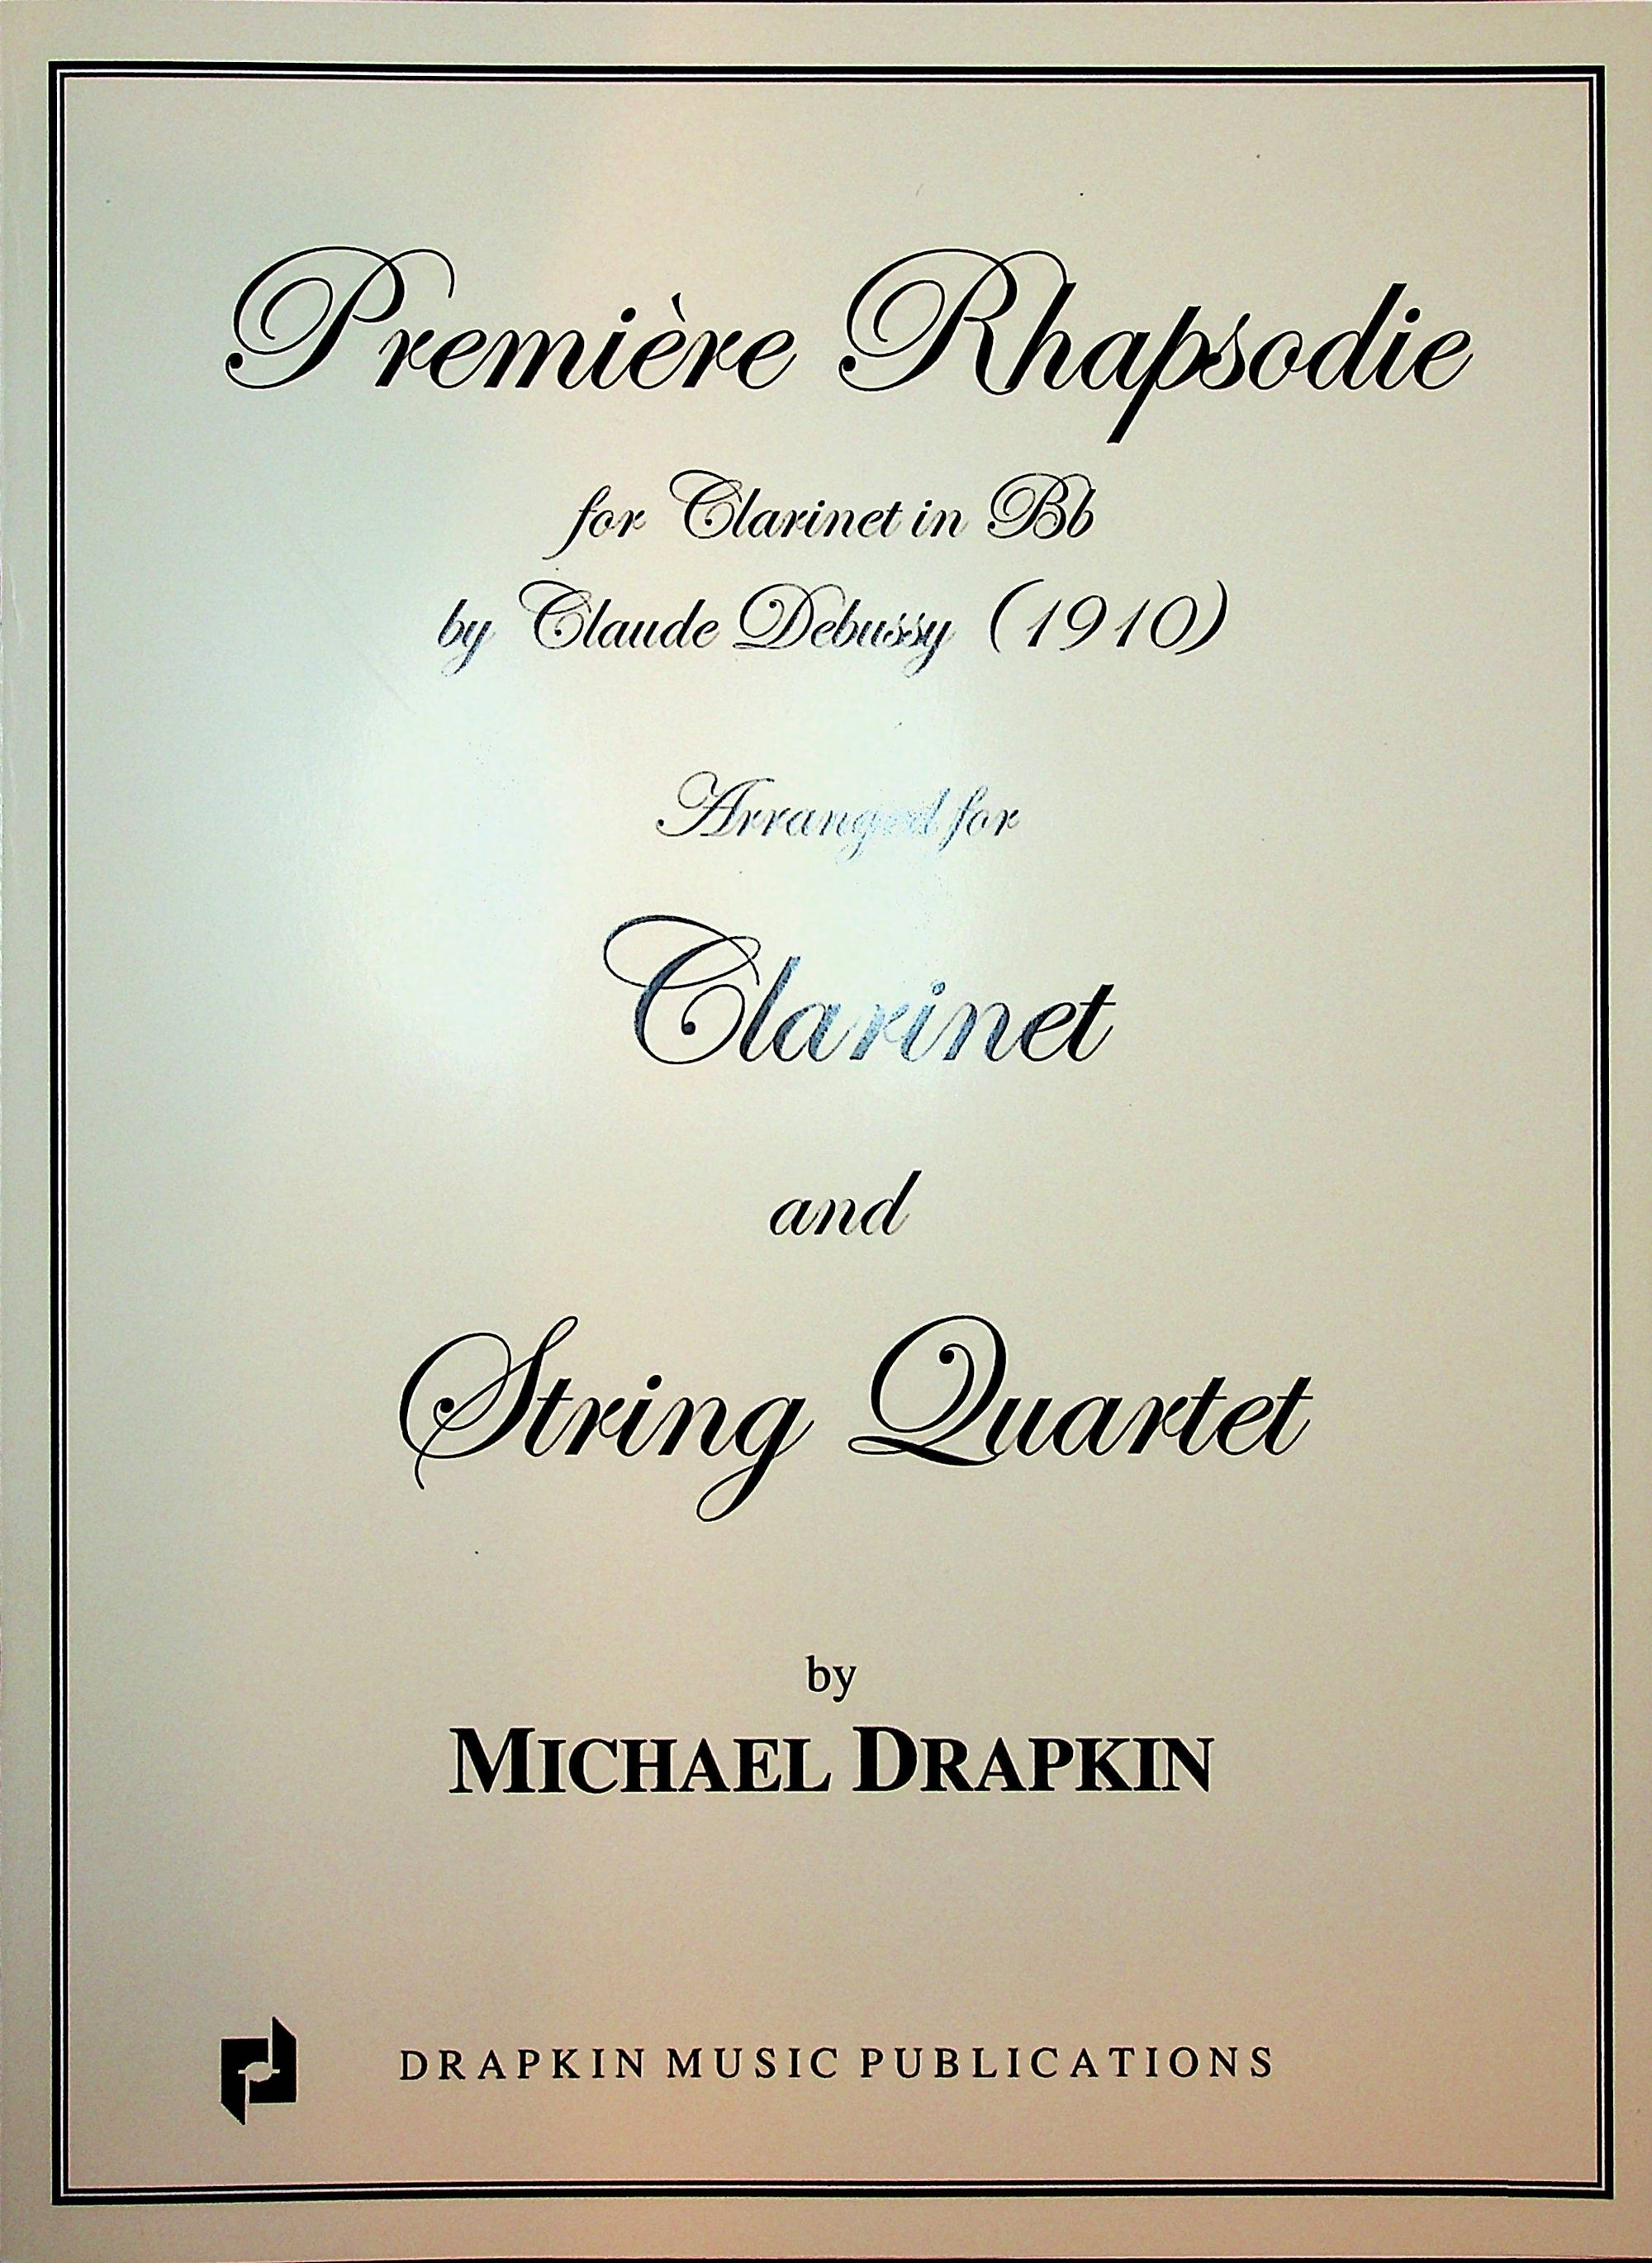 Weber: Clarinet Concerto No. 1 in F Minor, Op. 73 (arr. for clarinet & string quartet)